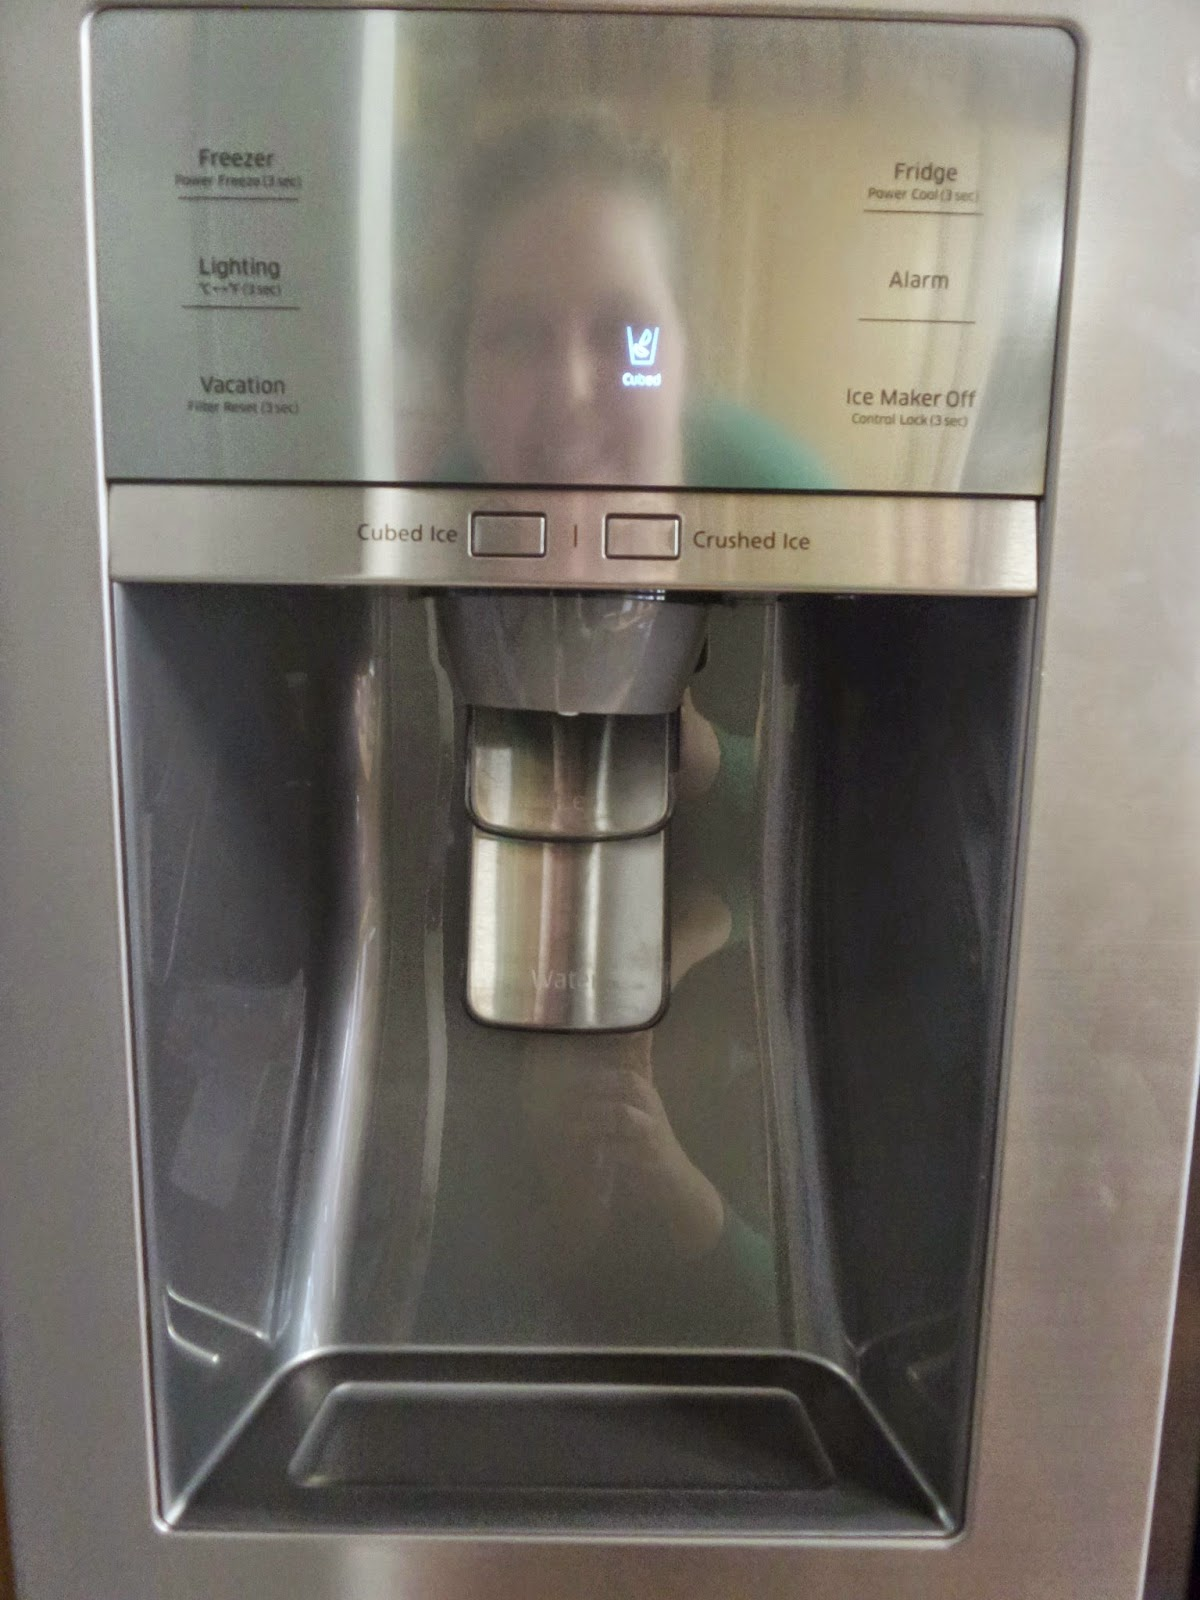 Ice and Water Dispenser in Samsung Showcase Fridge Freezer